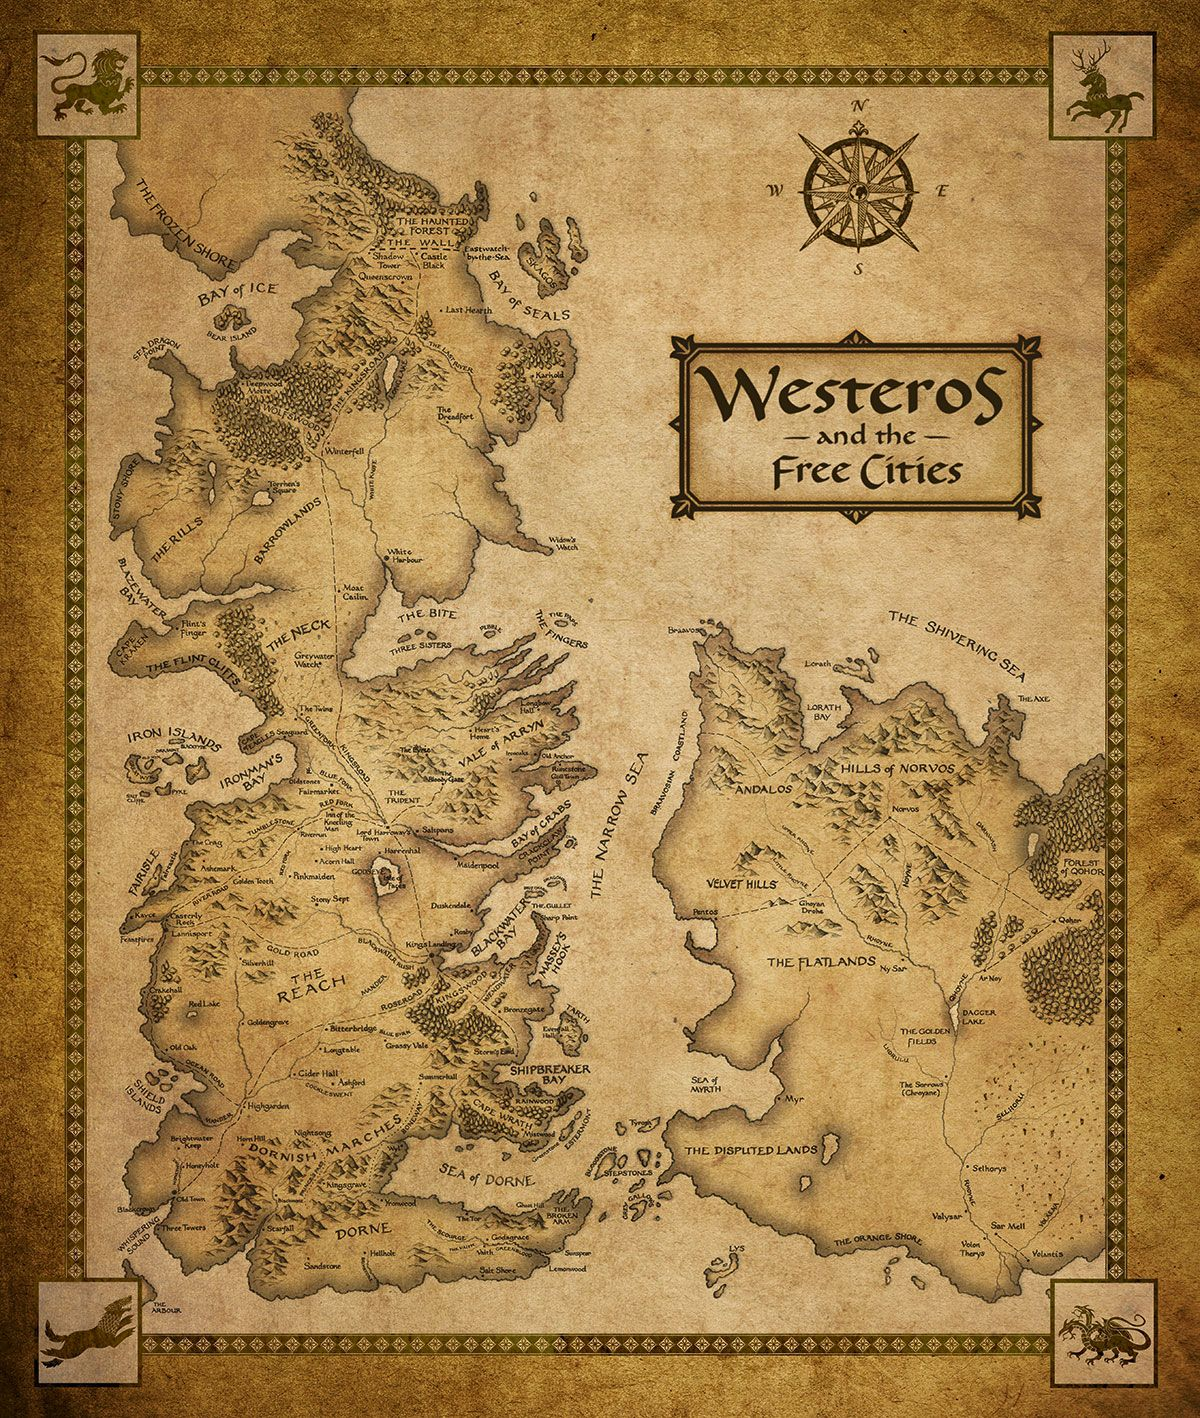 Game of thrones map hd wallpapers download free game of thrones map game of thrones map hd wallpapers download free game of thrones map tumblr pinterest hd gumiabroncs Images